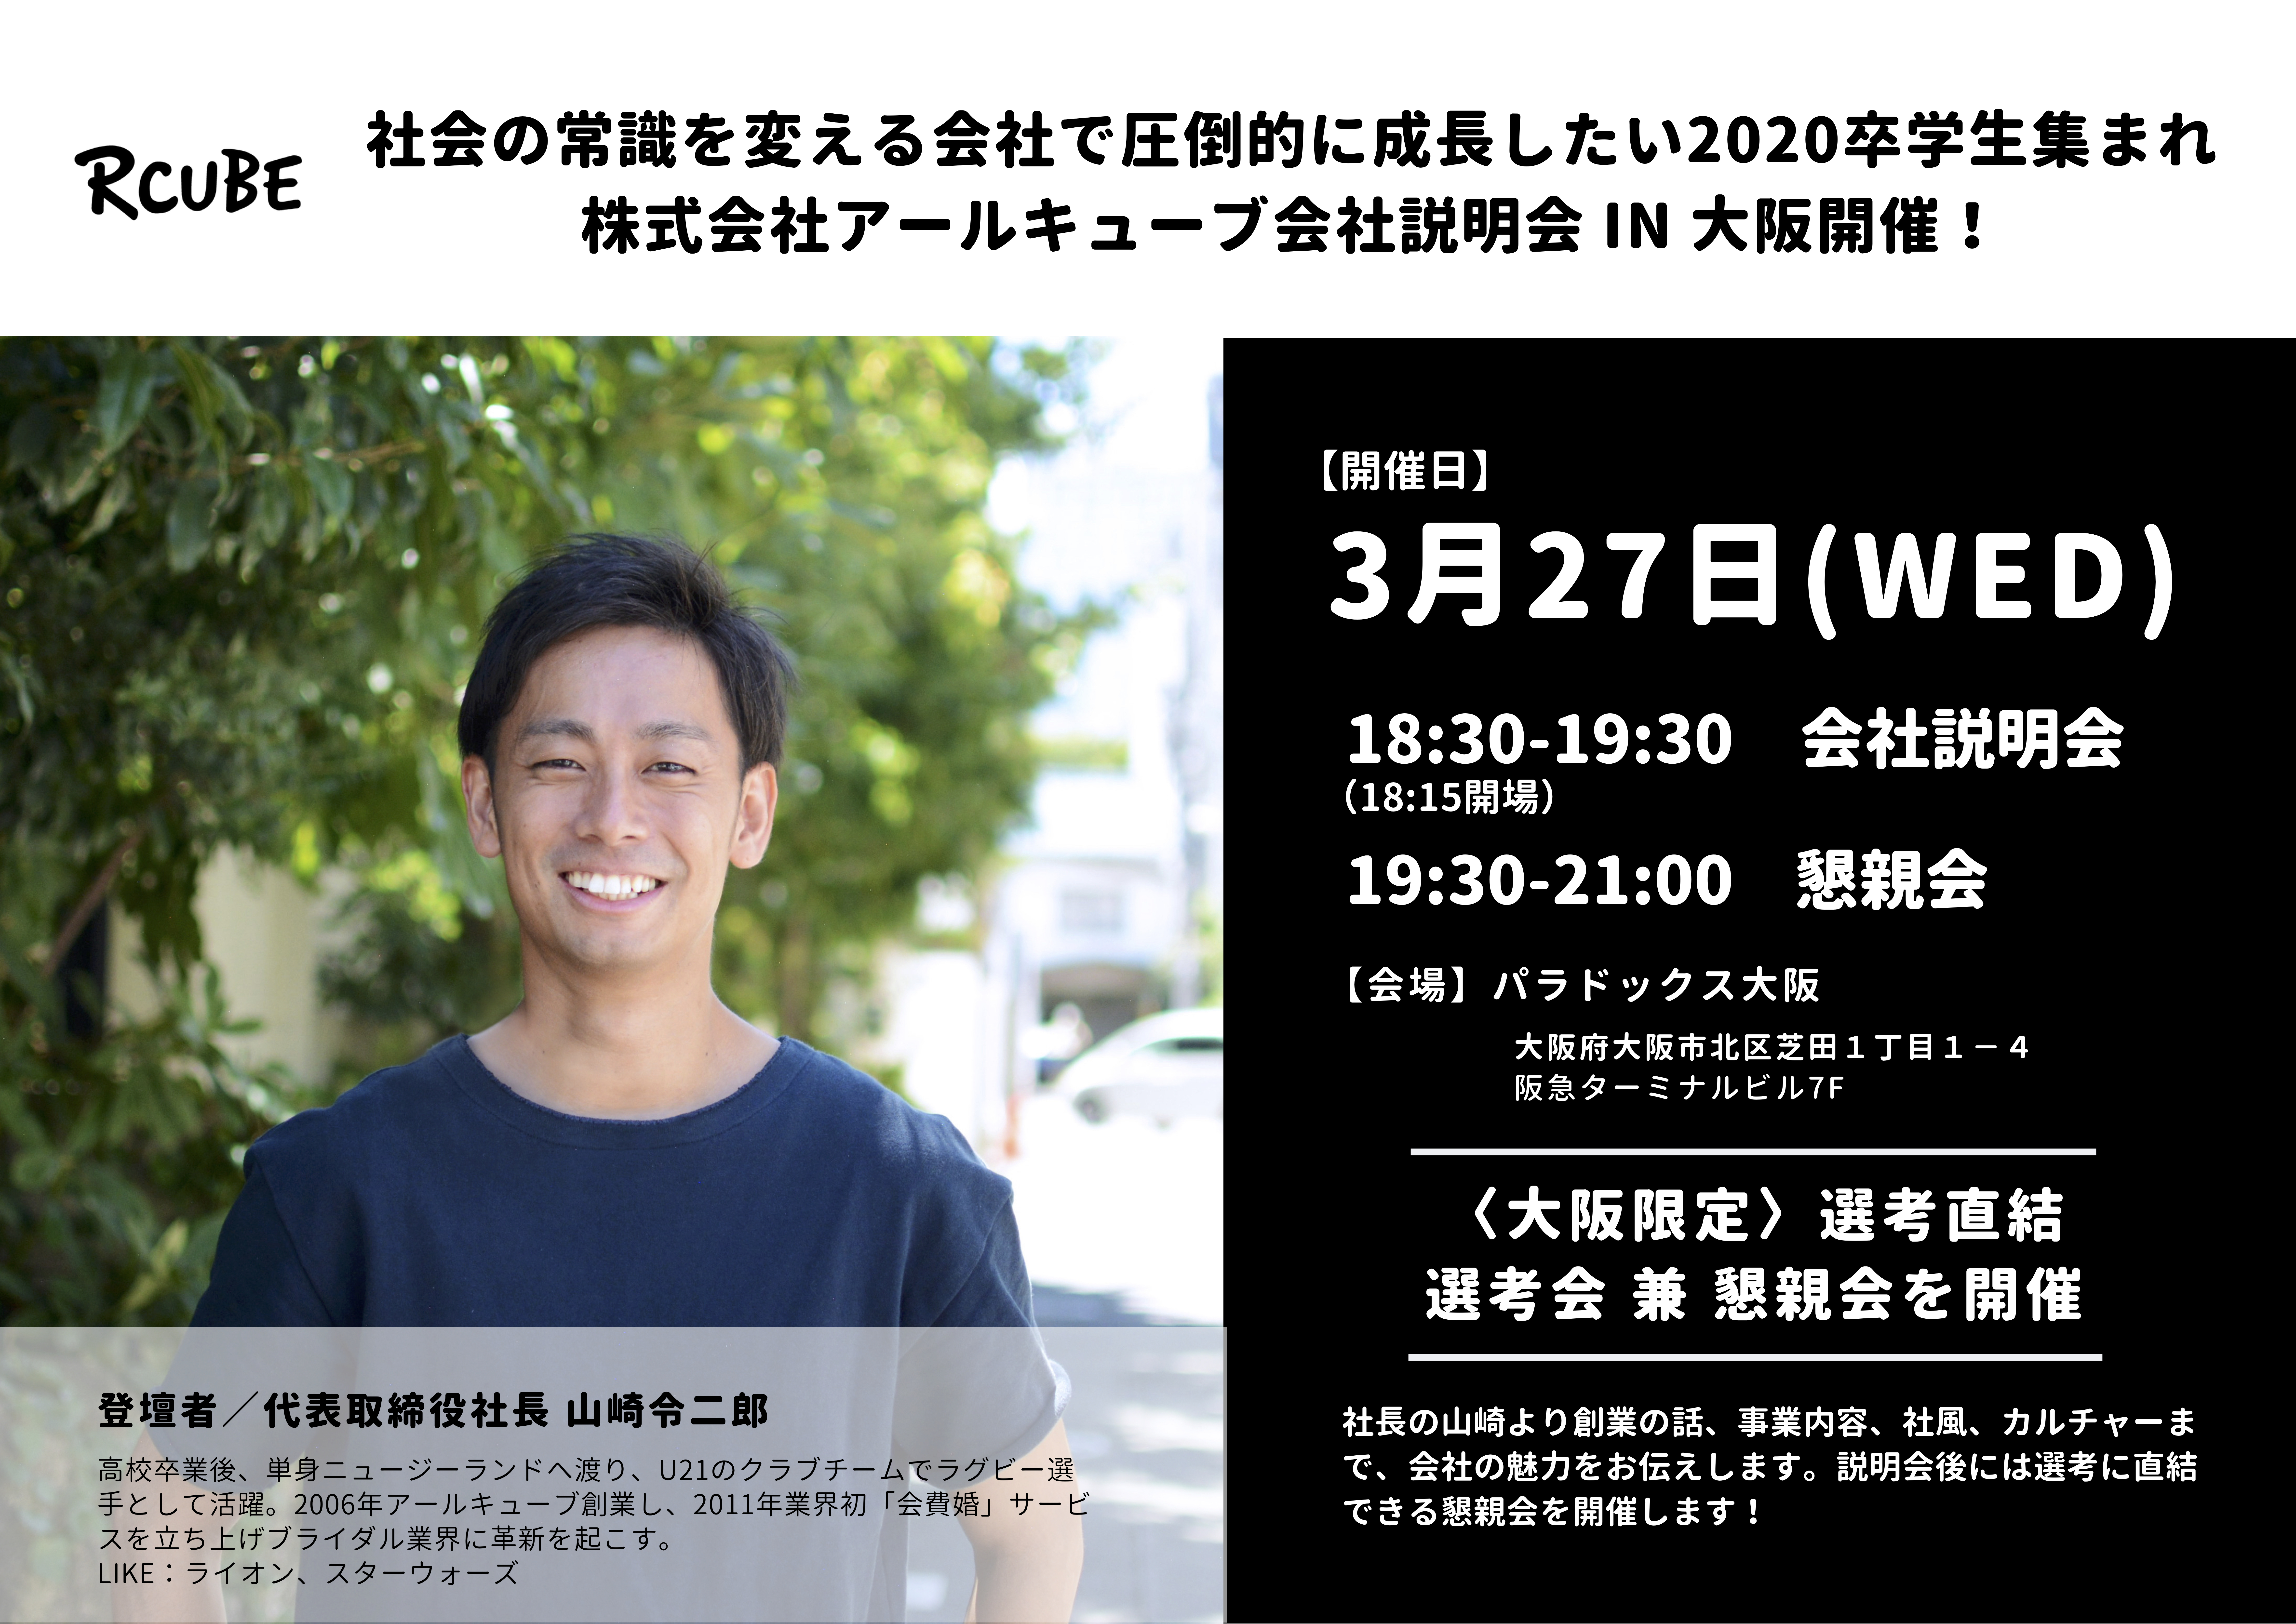 3/27 RCUBE初、関西での採用イベント!社長参加&懇親会つき!